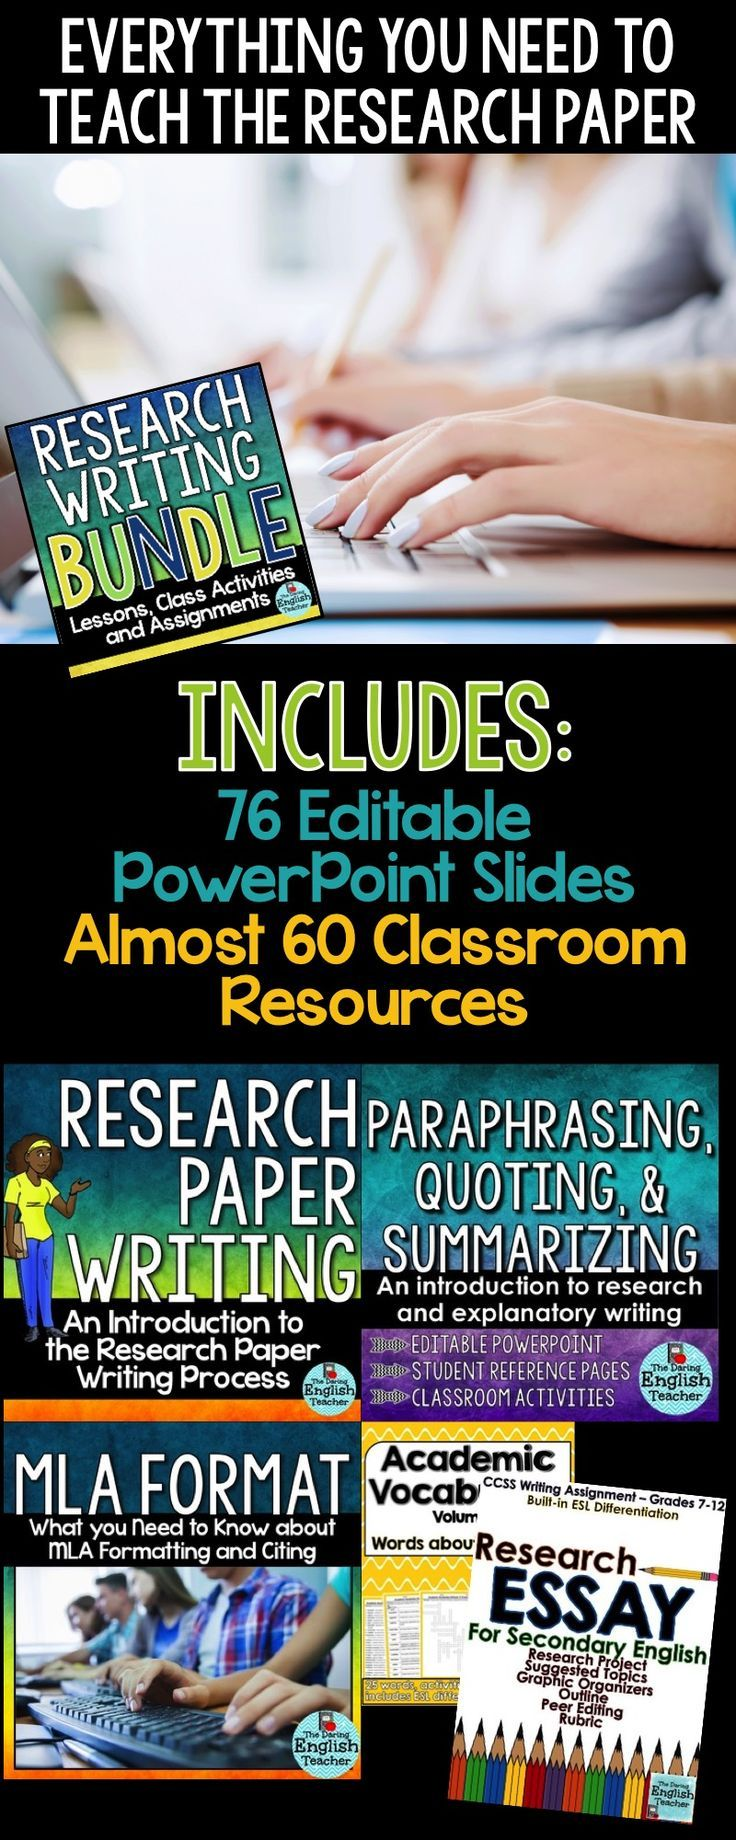 007 How To Prepare Research Paper Unique Ppt Full